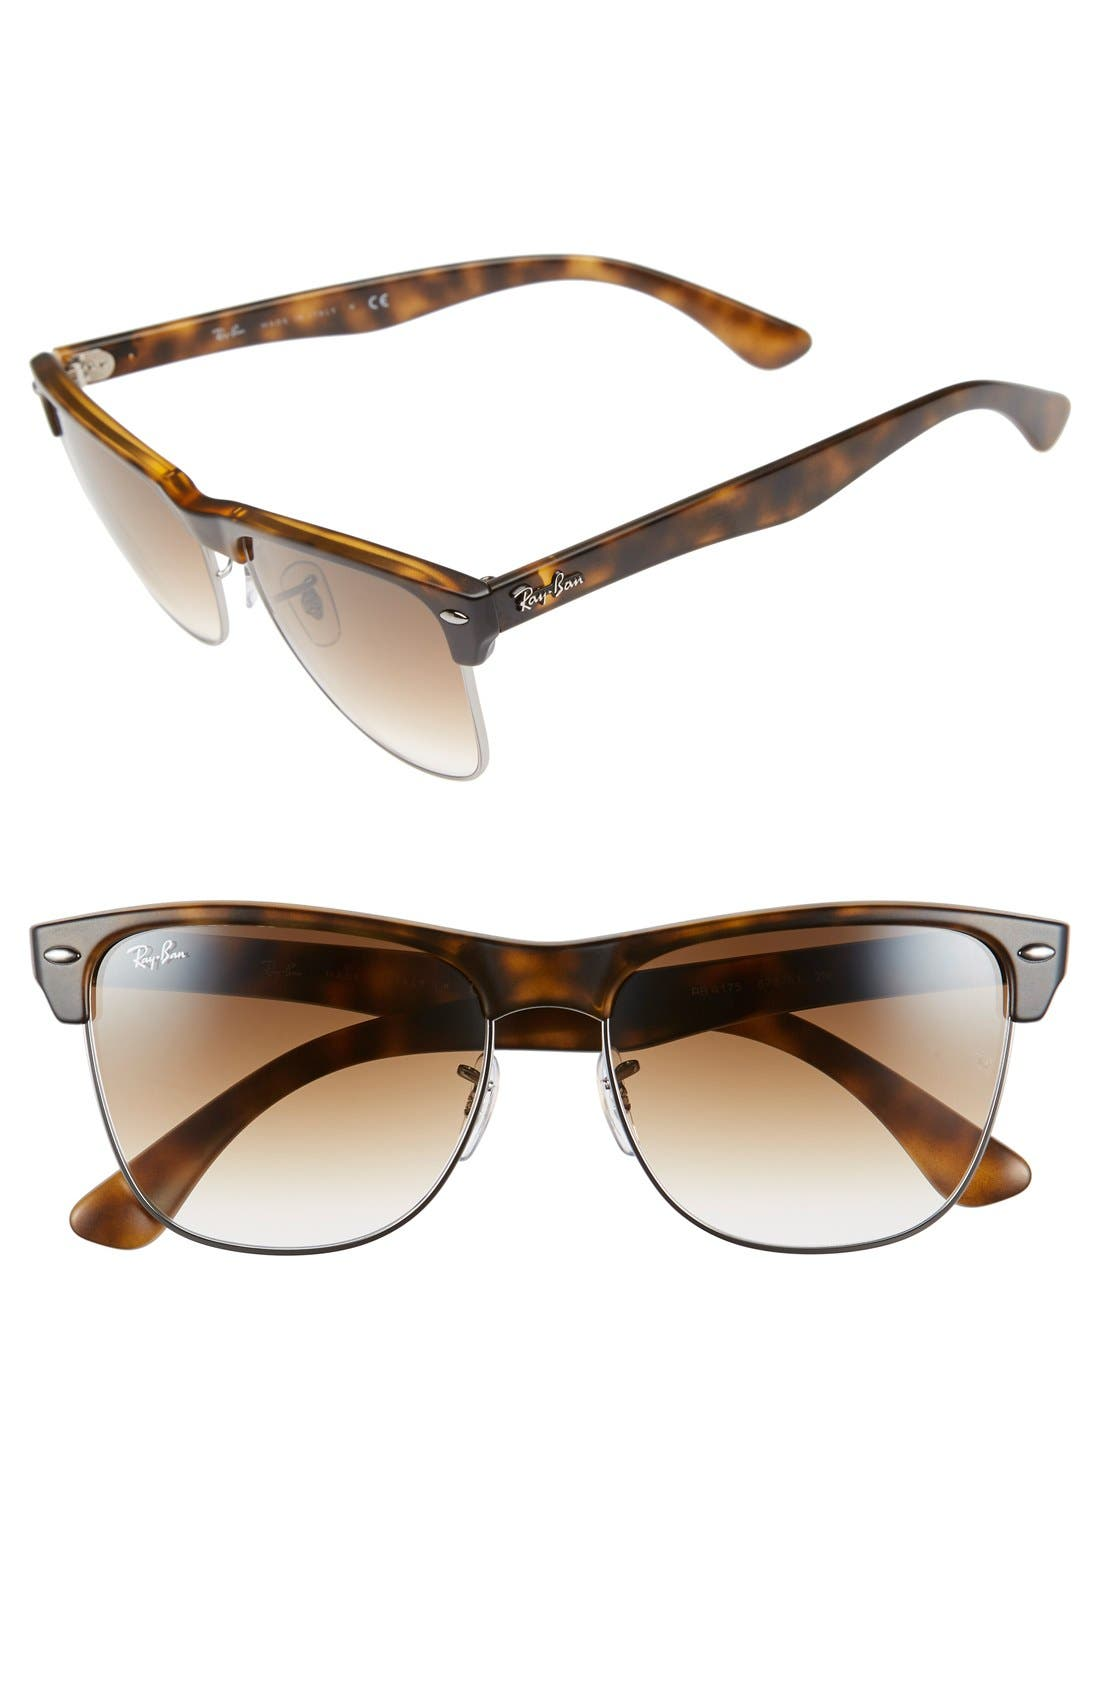 RAY-BAN Clubmaster 57mm Sunglasses